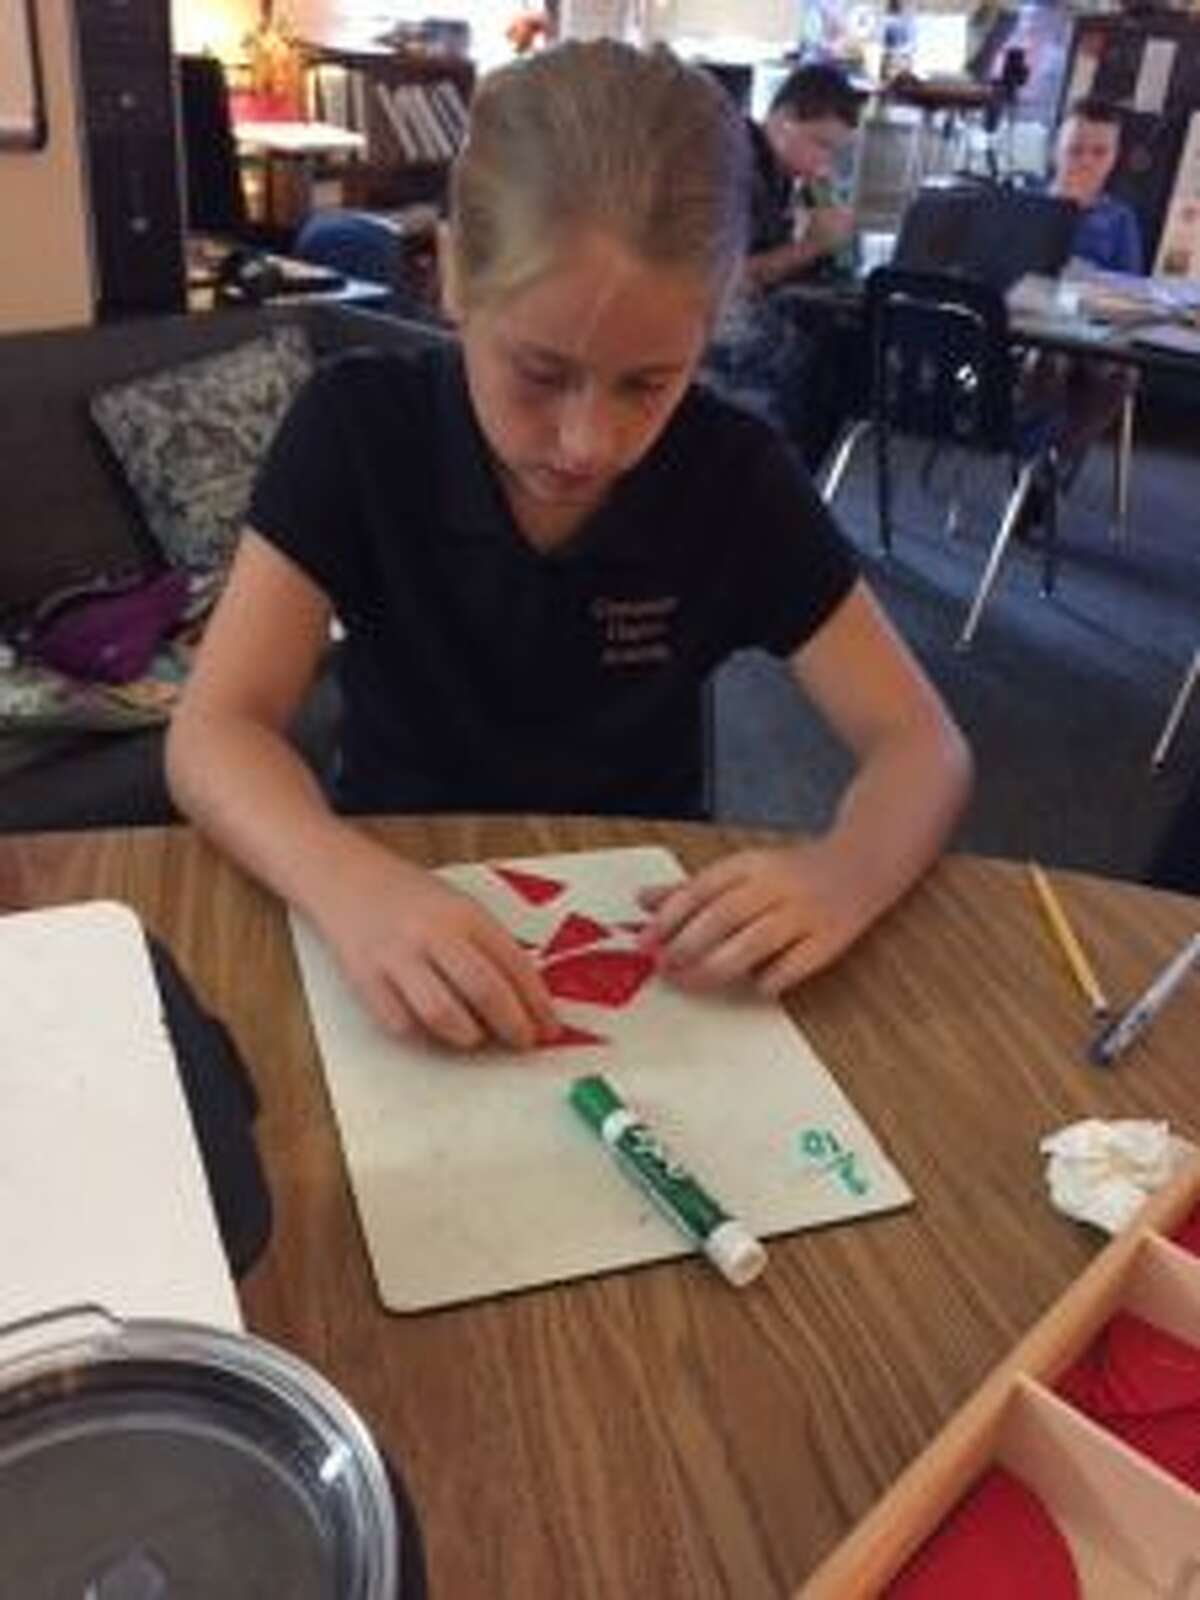 A sixth-grader uses hands-on tools while learning about fractions in Diana Kreh's Montessori-inspired classroom at Crossroads Charter Academy.